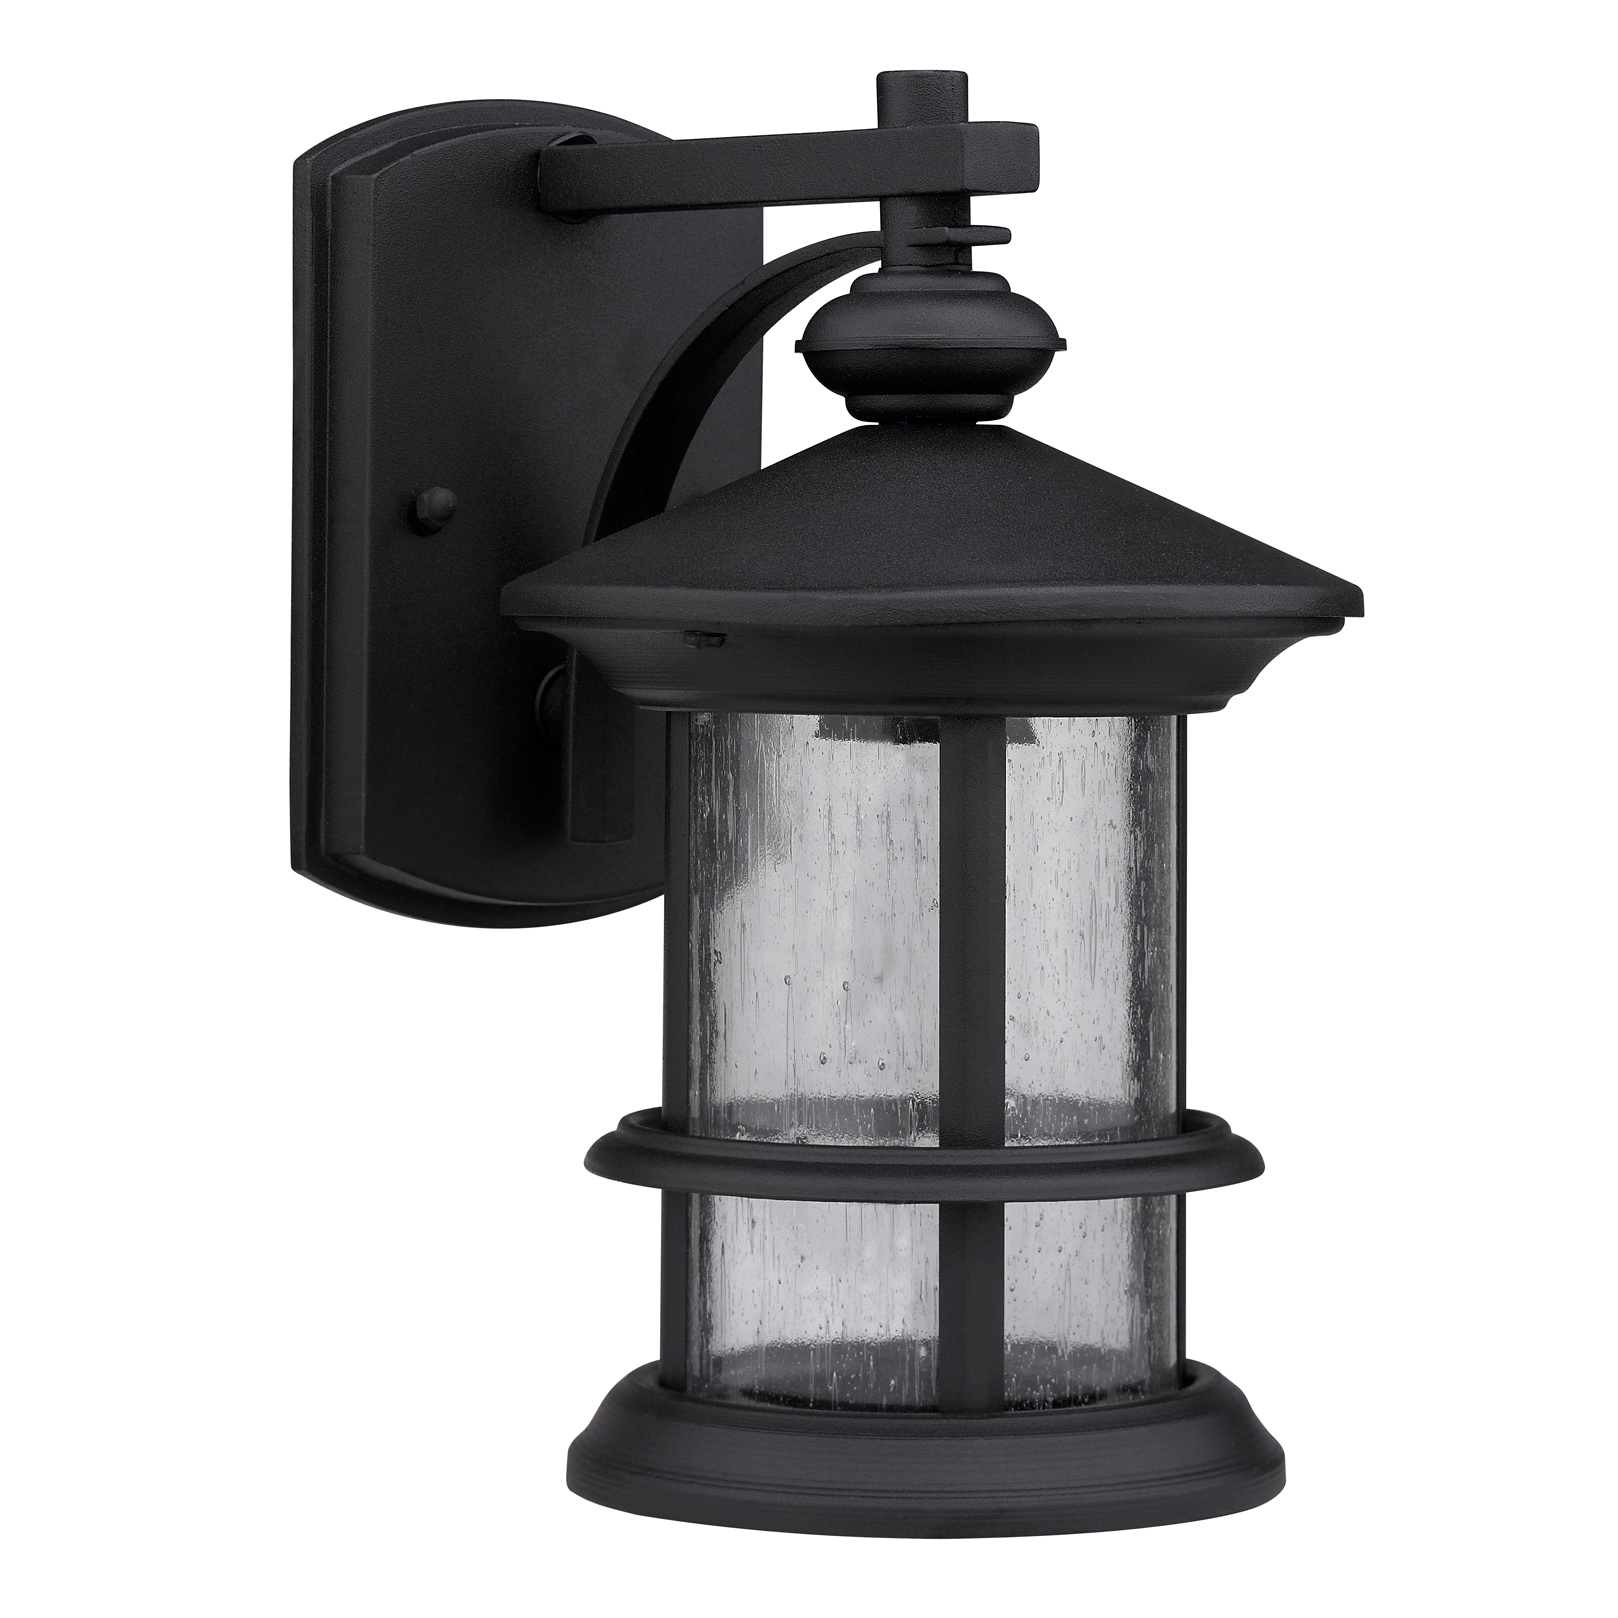 Transitional Black One-Light Weatherproof Outdoor Wall